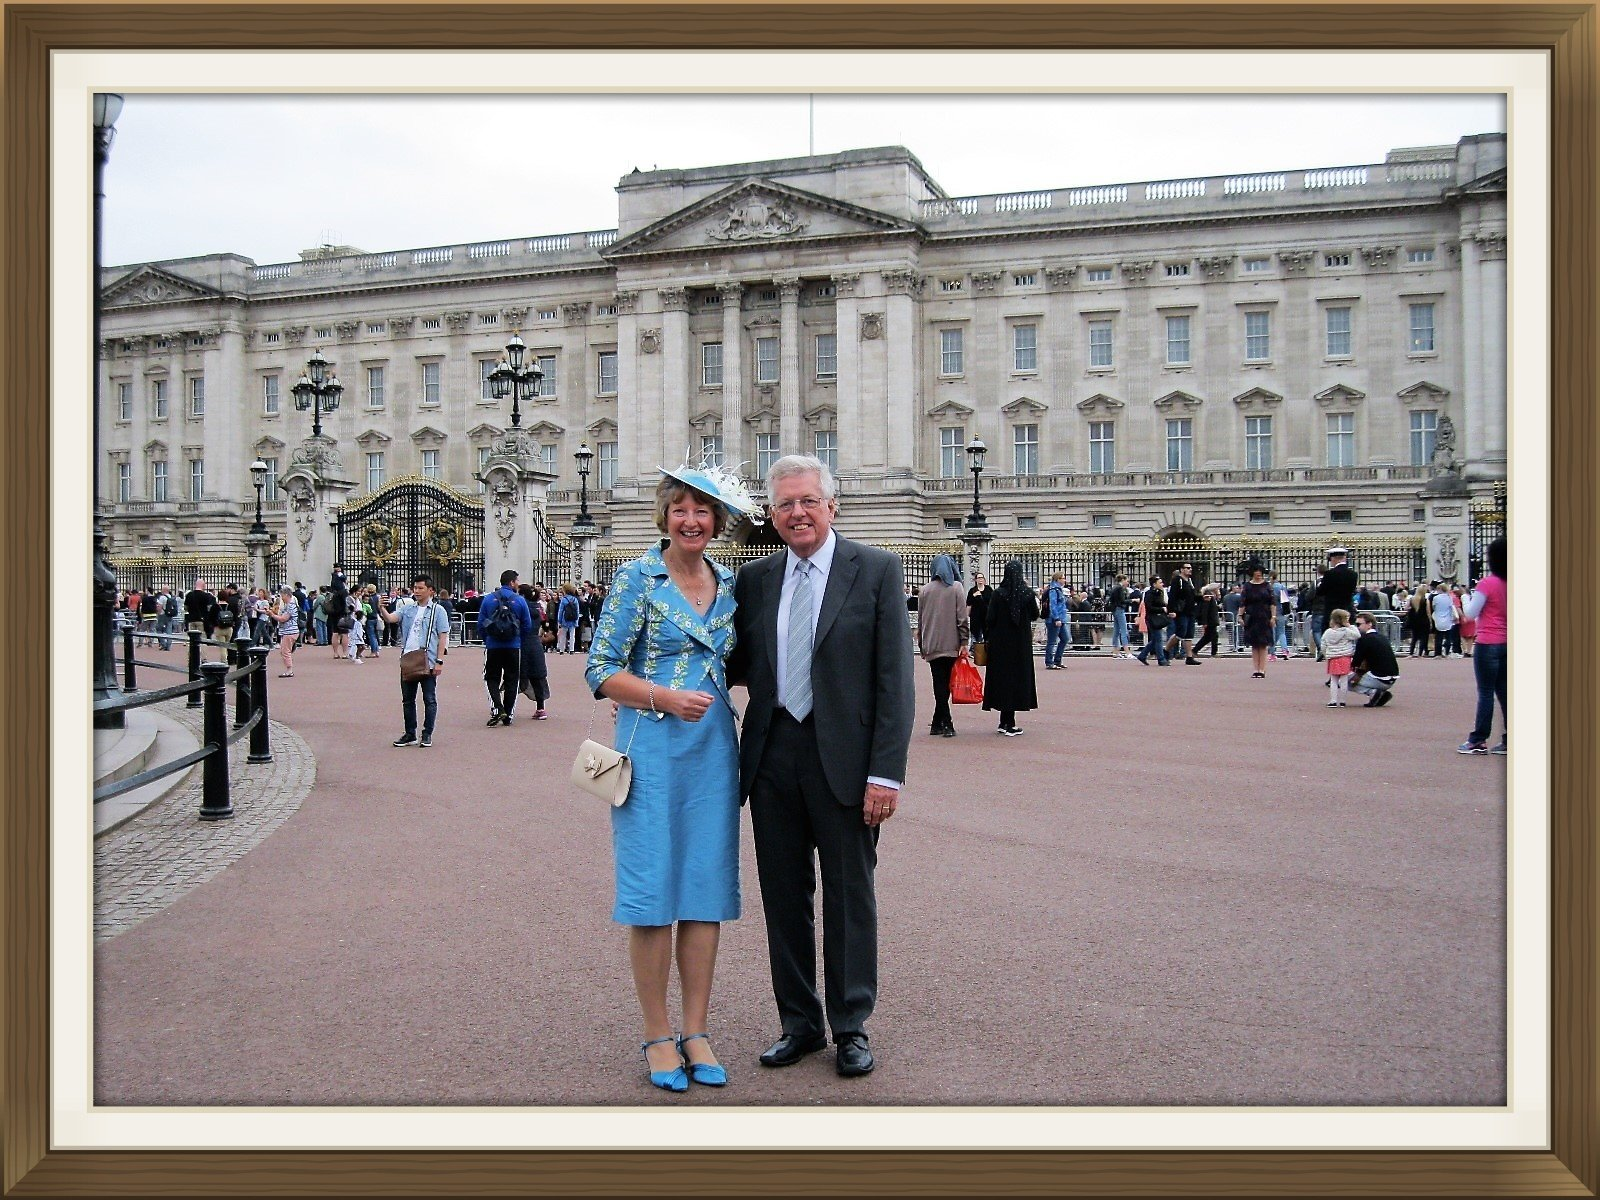 June Trantom and Brian Kurton at Buckingham Palace